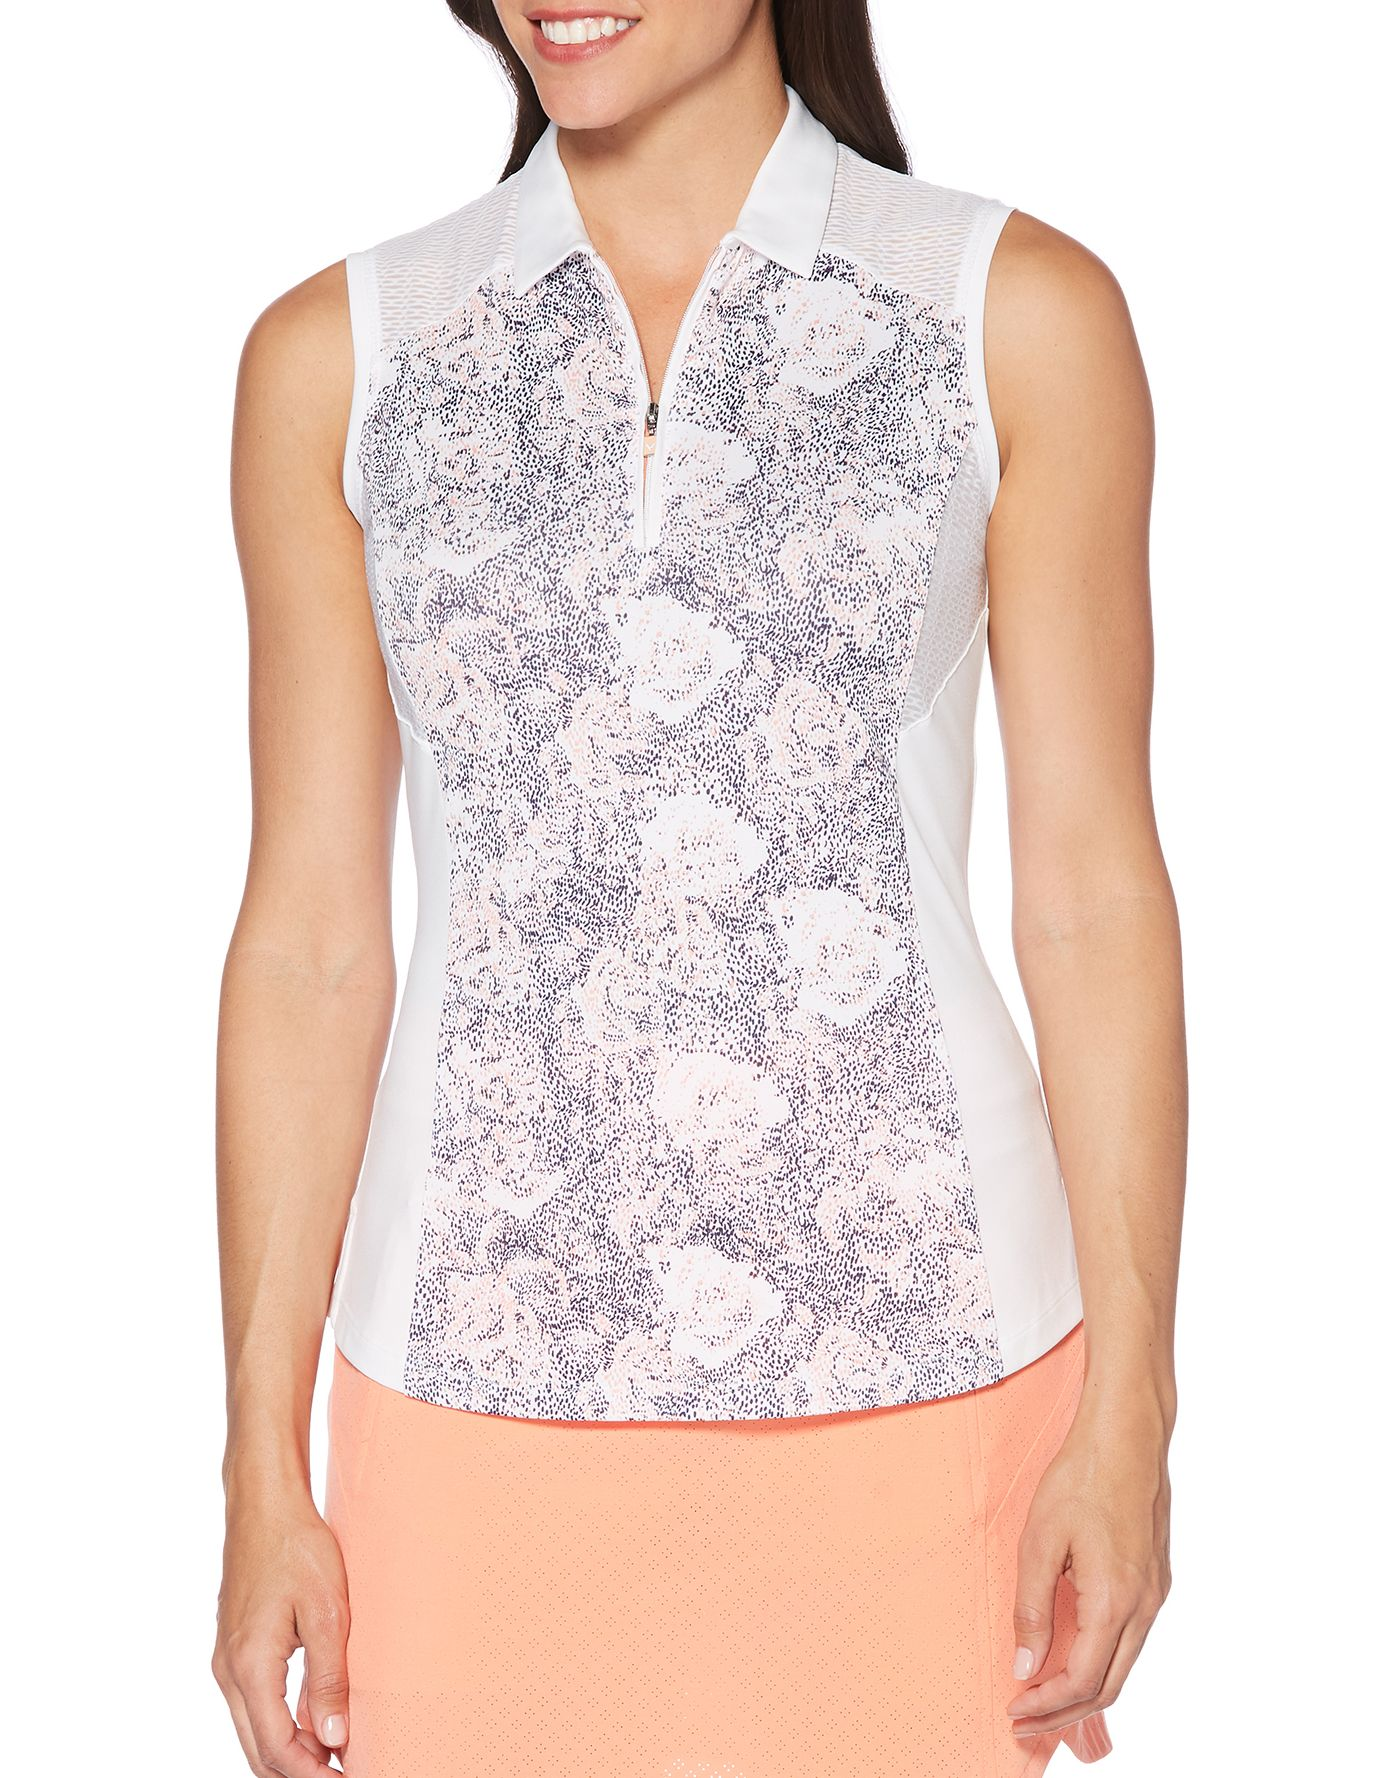 Callaway Women's Ventilated Dotted Blossom Print Golf Polo